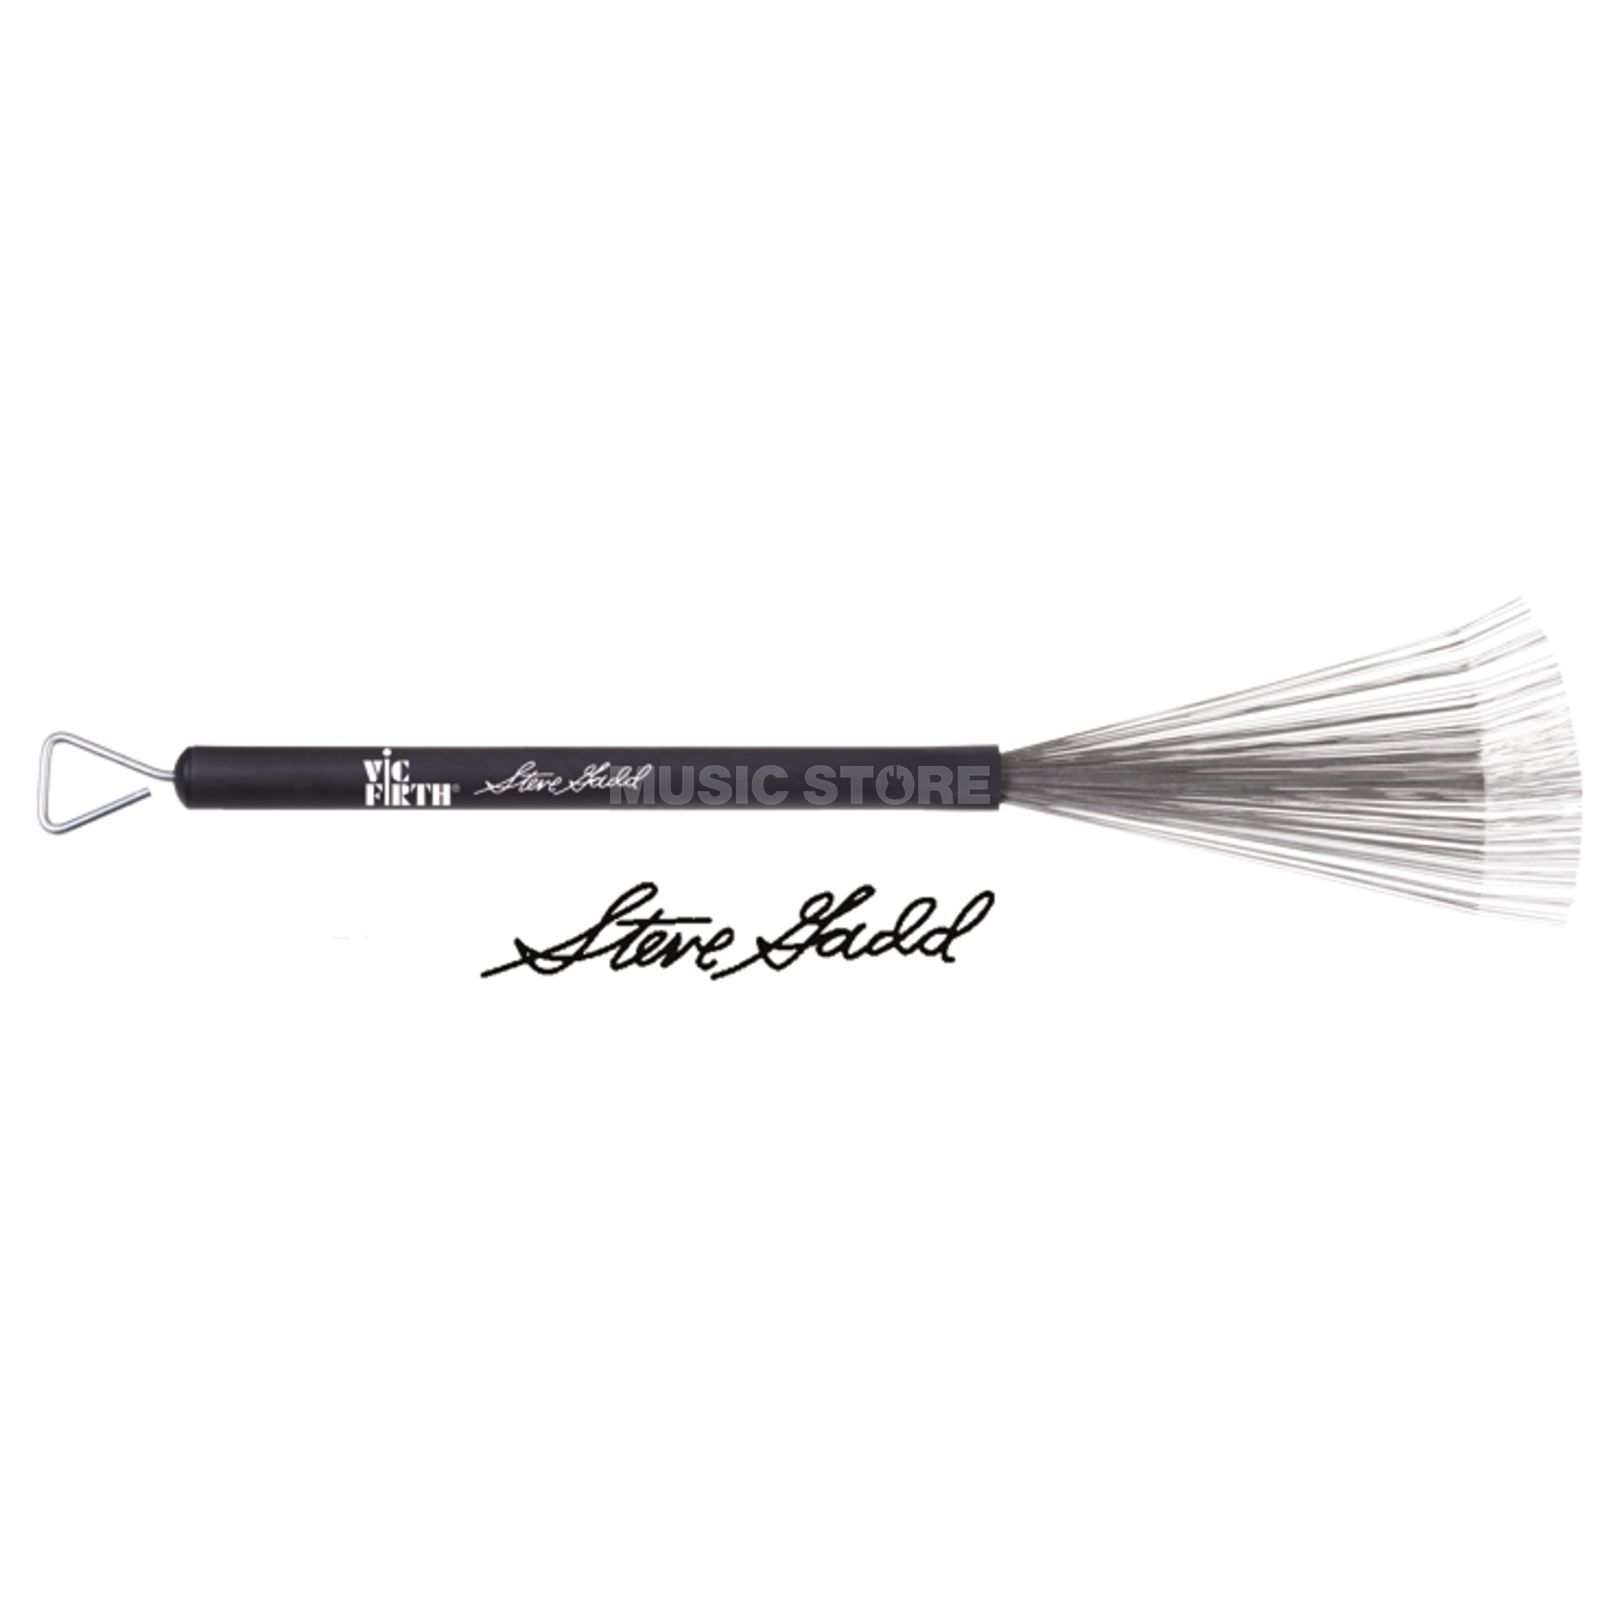 Vic-Firth Steve Gadd Wire Brushes SGWB, Signature Series Produktbild